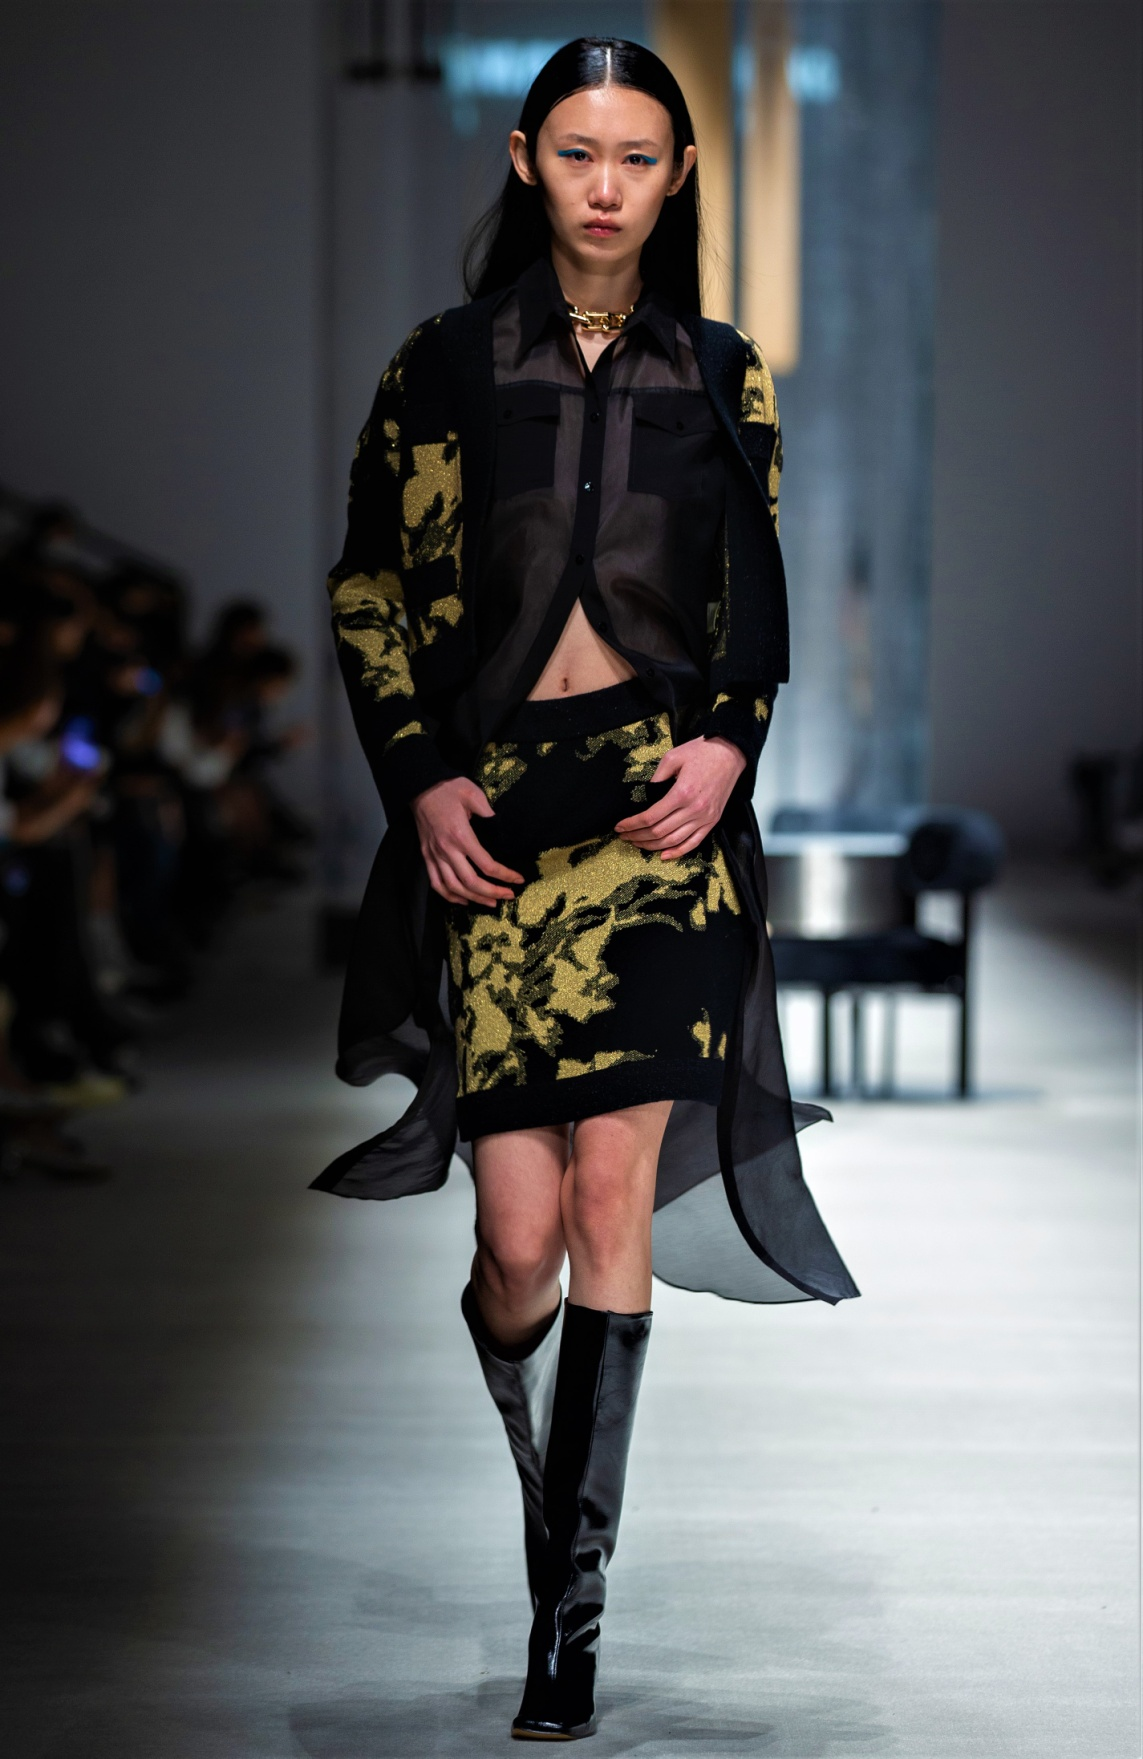 May D. Wang New Cashmere blk gold cropped.jpg